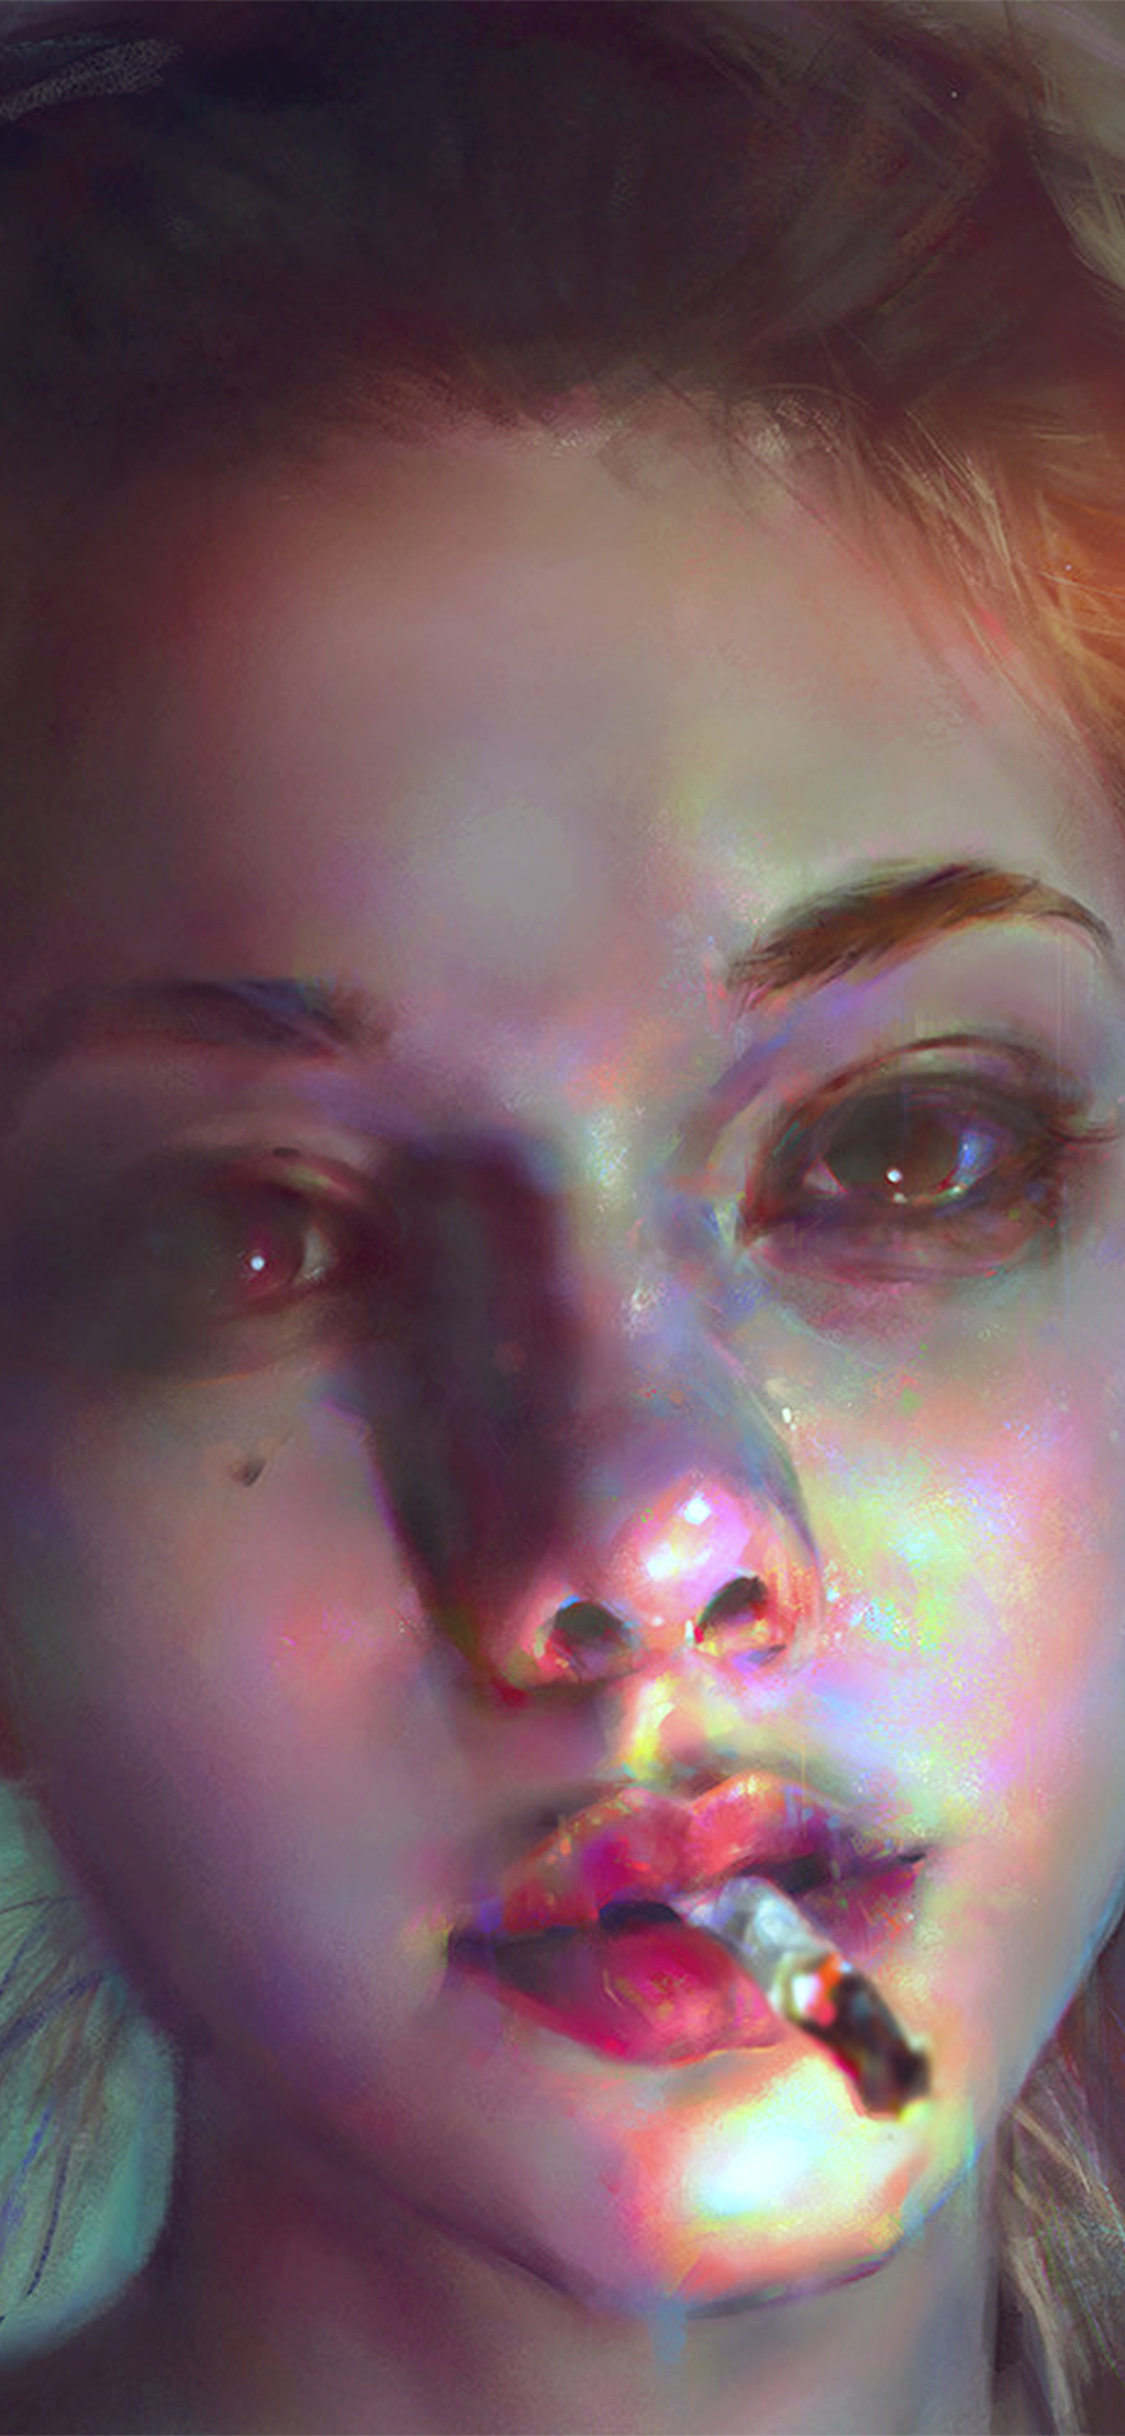 iPhonexpapers.com-Apple-iPhone-wallpaper-aw97-yanjun-cheng-paint-face-girl-illustration-art-dark-flare